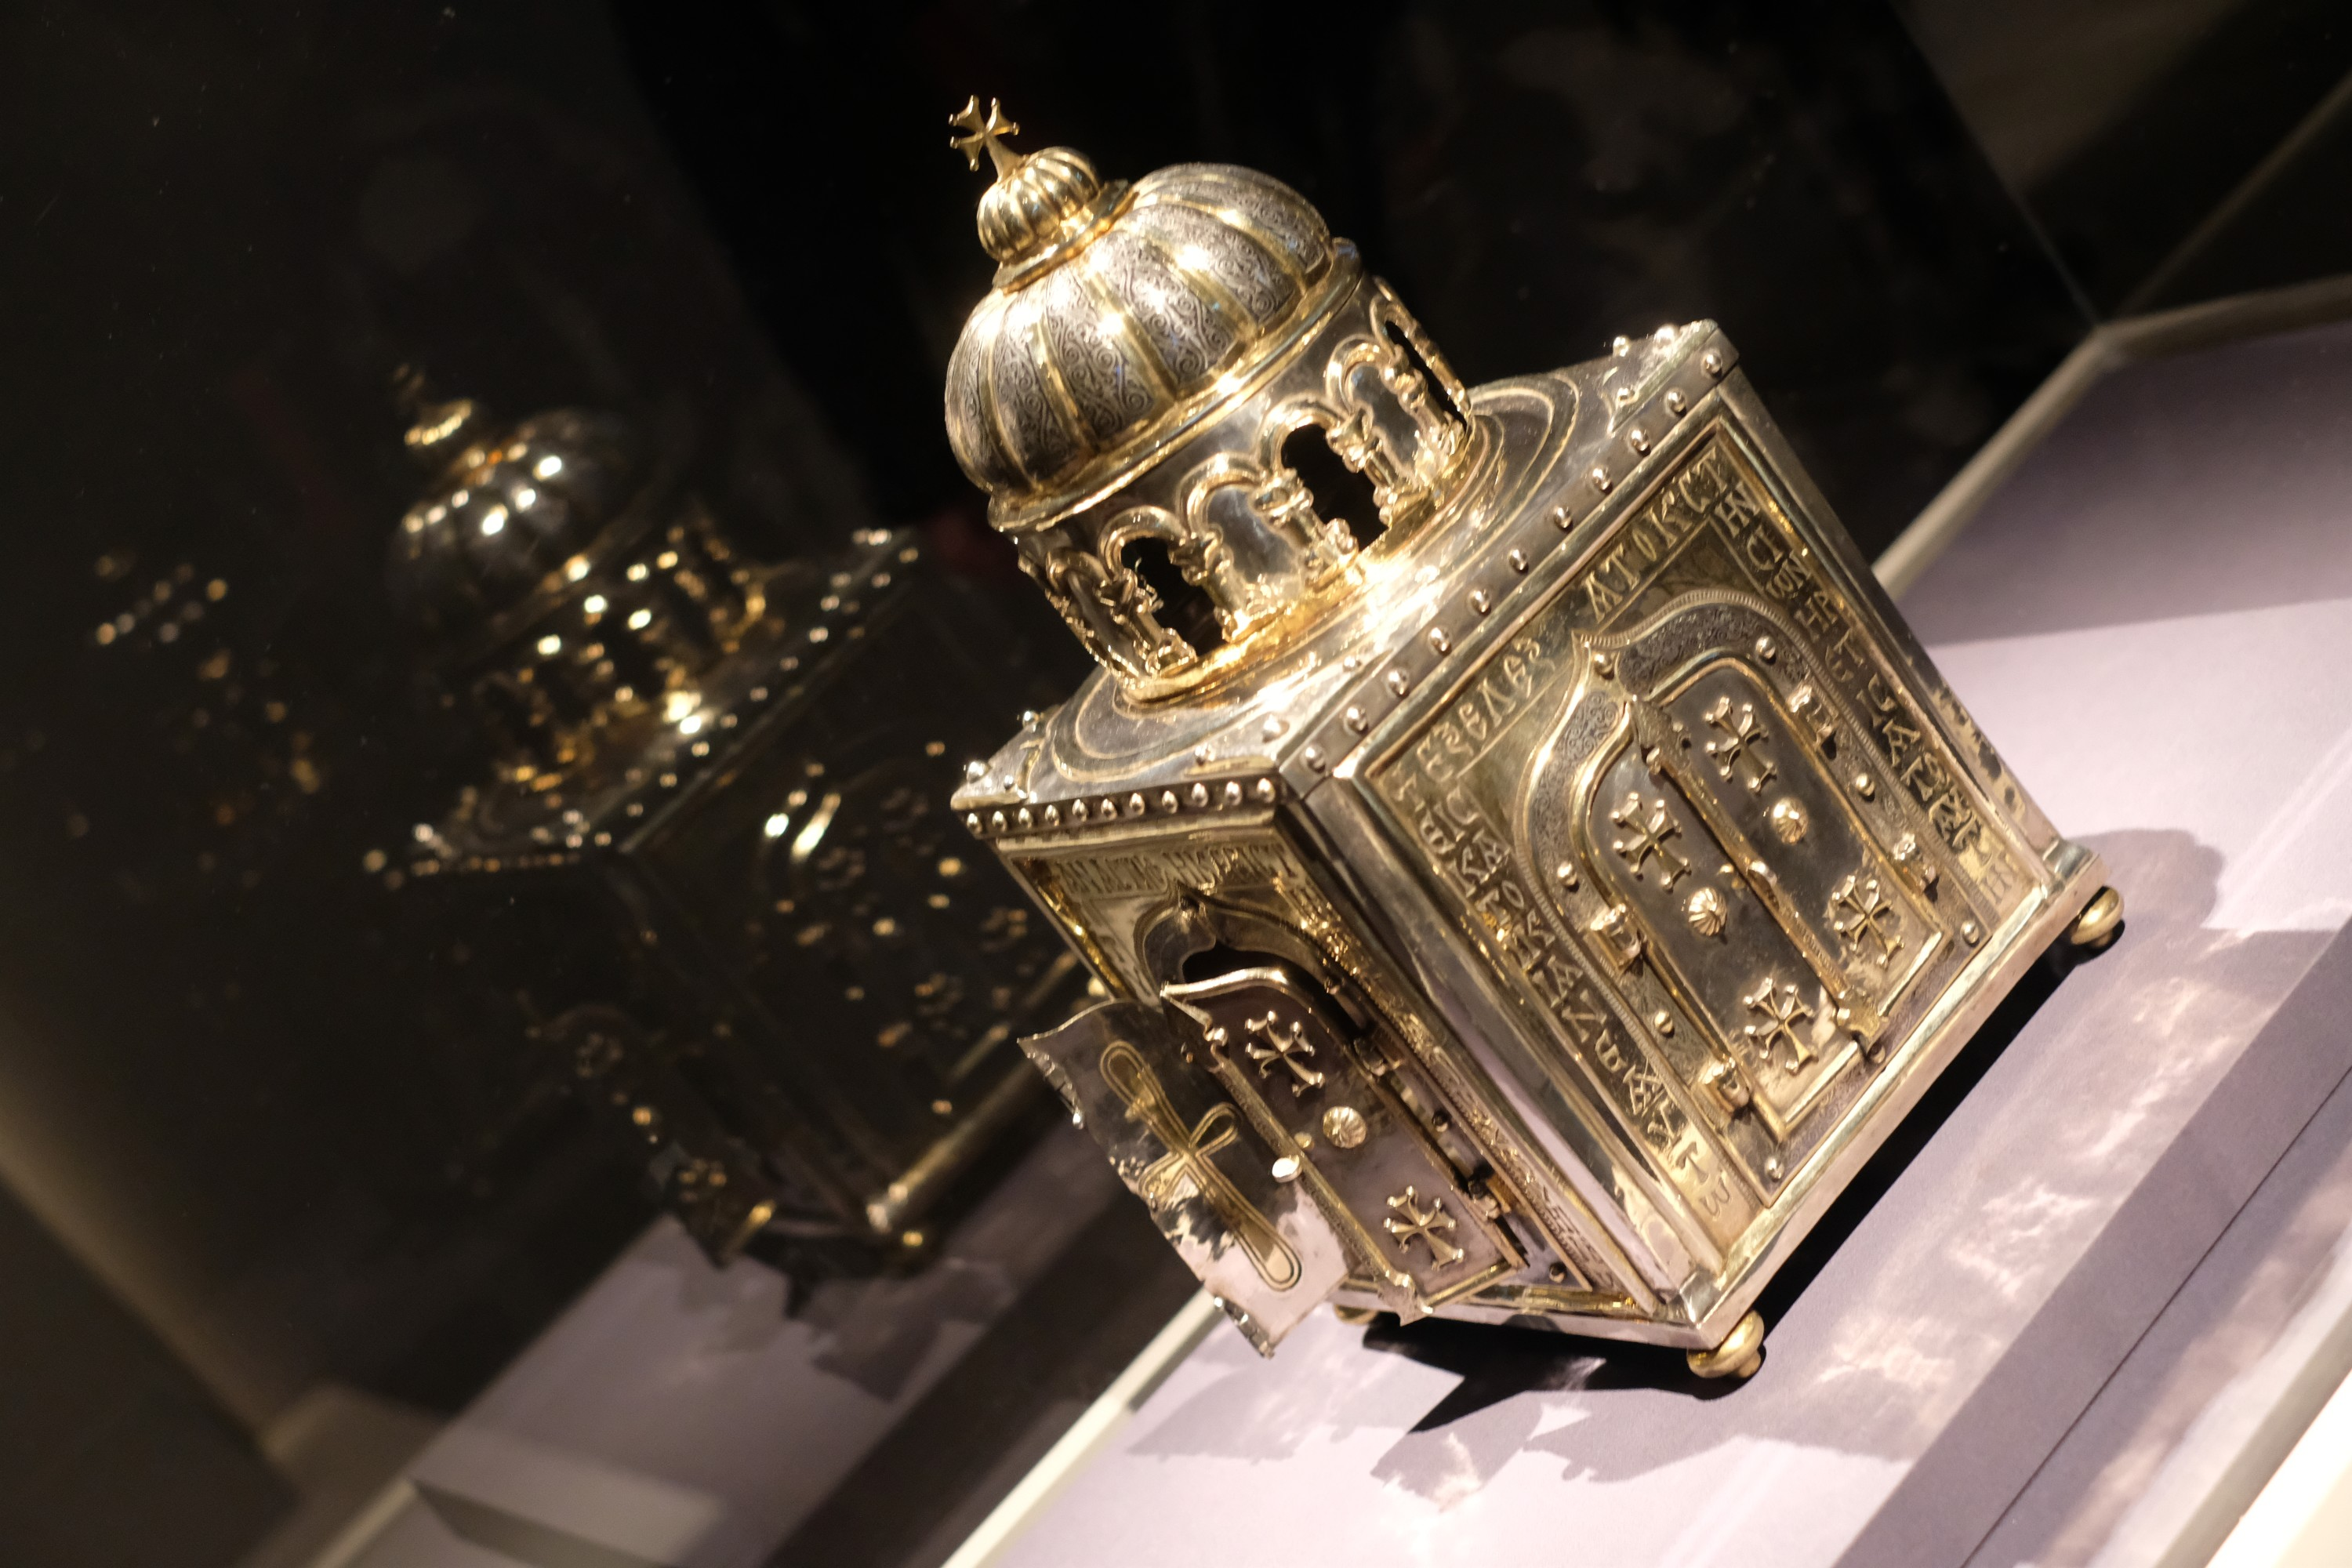 reliquary, to hold a saint's skull